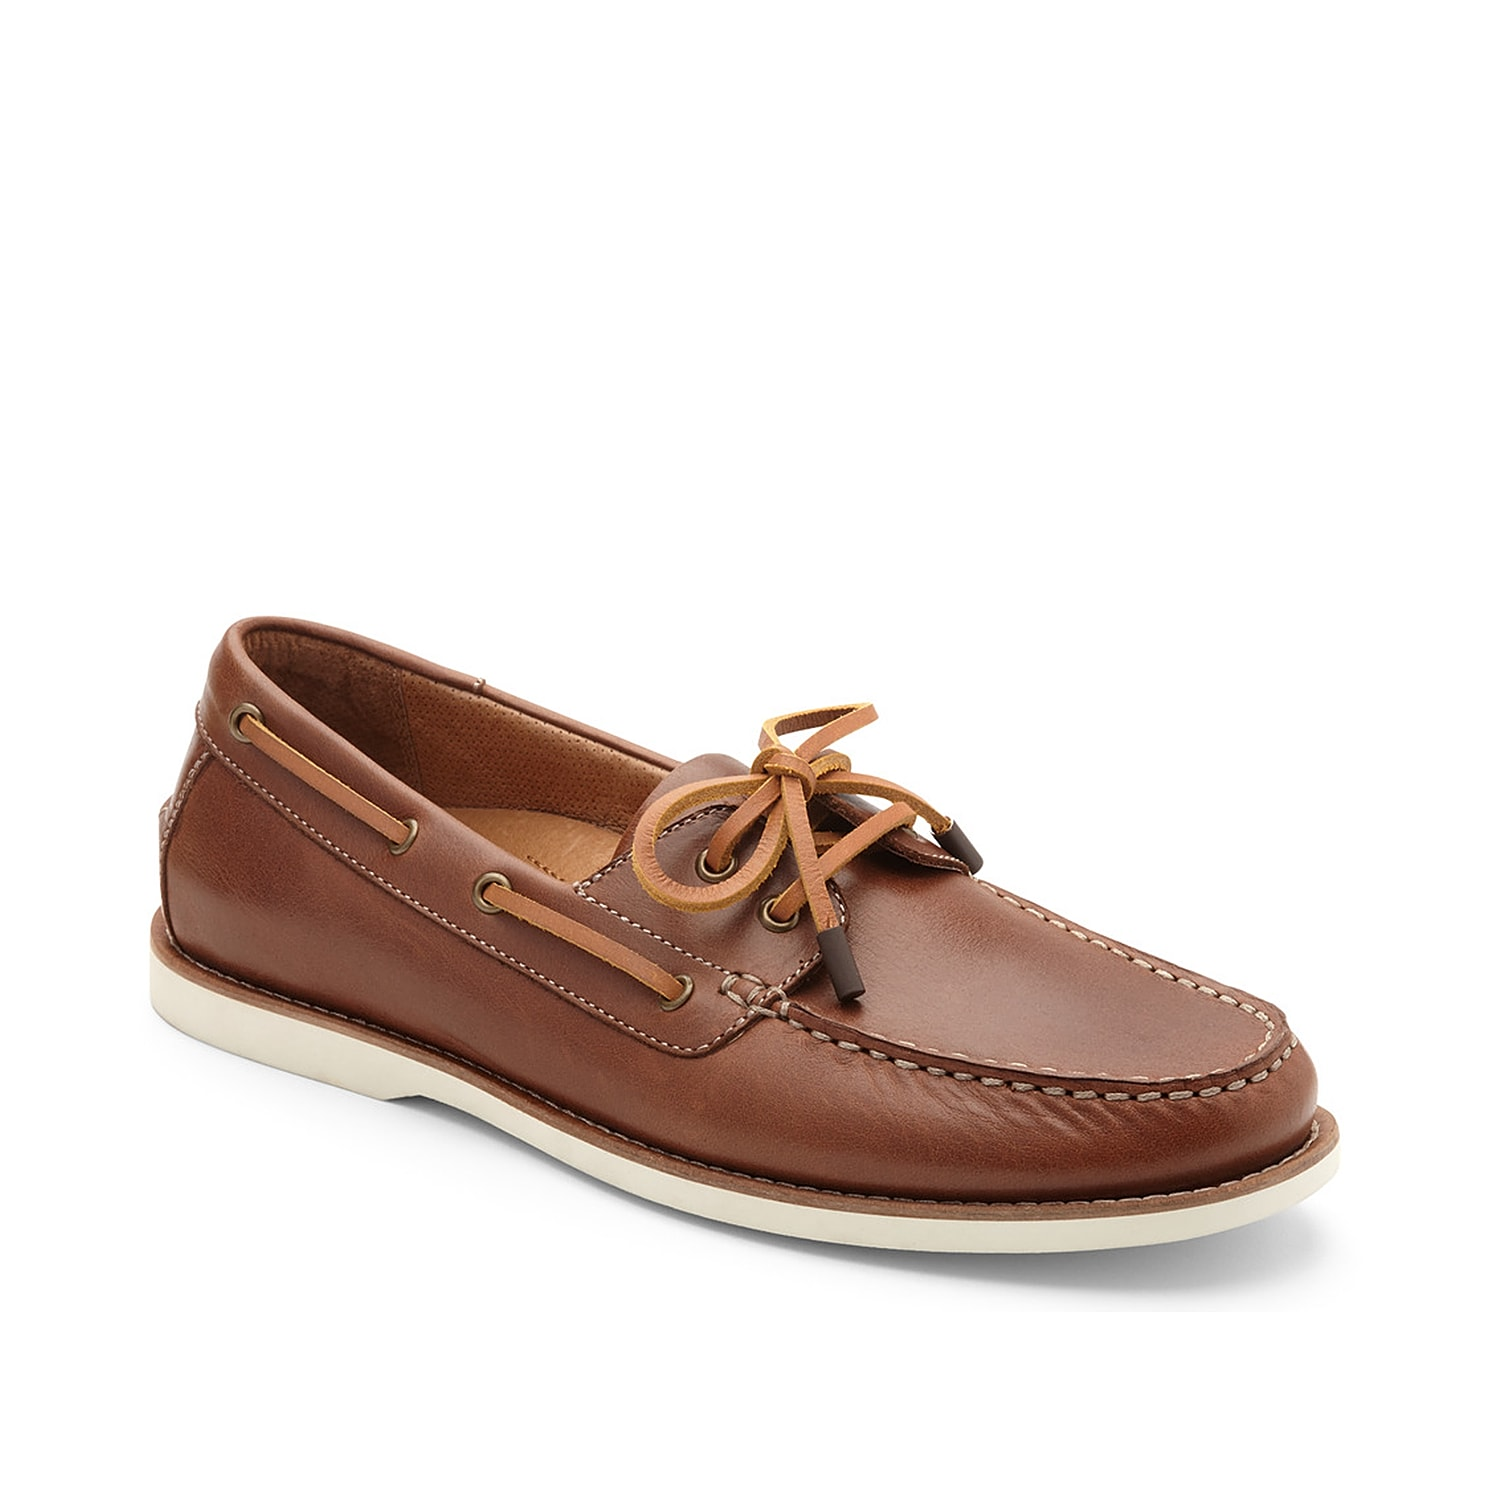 Bring forth your relaxed laidback style with the Lloyd boat shoe from Vionic. Boasting a slip-on silhouette, this leather loafer is designed with 360-degree lacing system and supportive orthotic Technology.